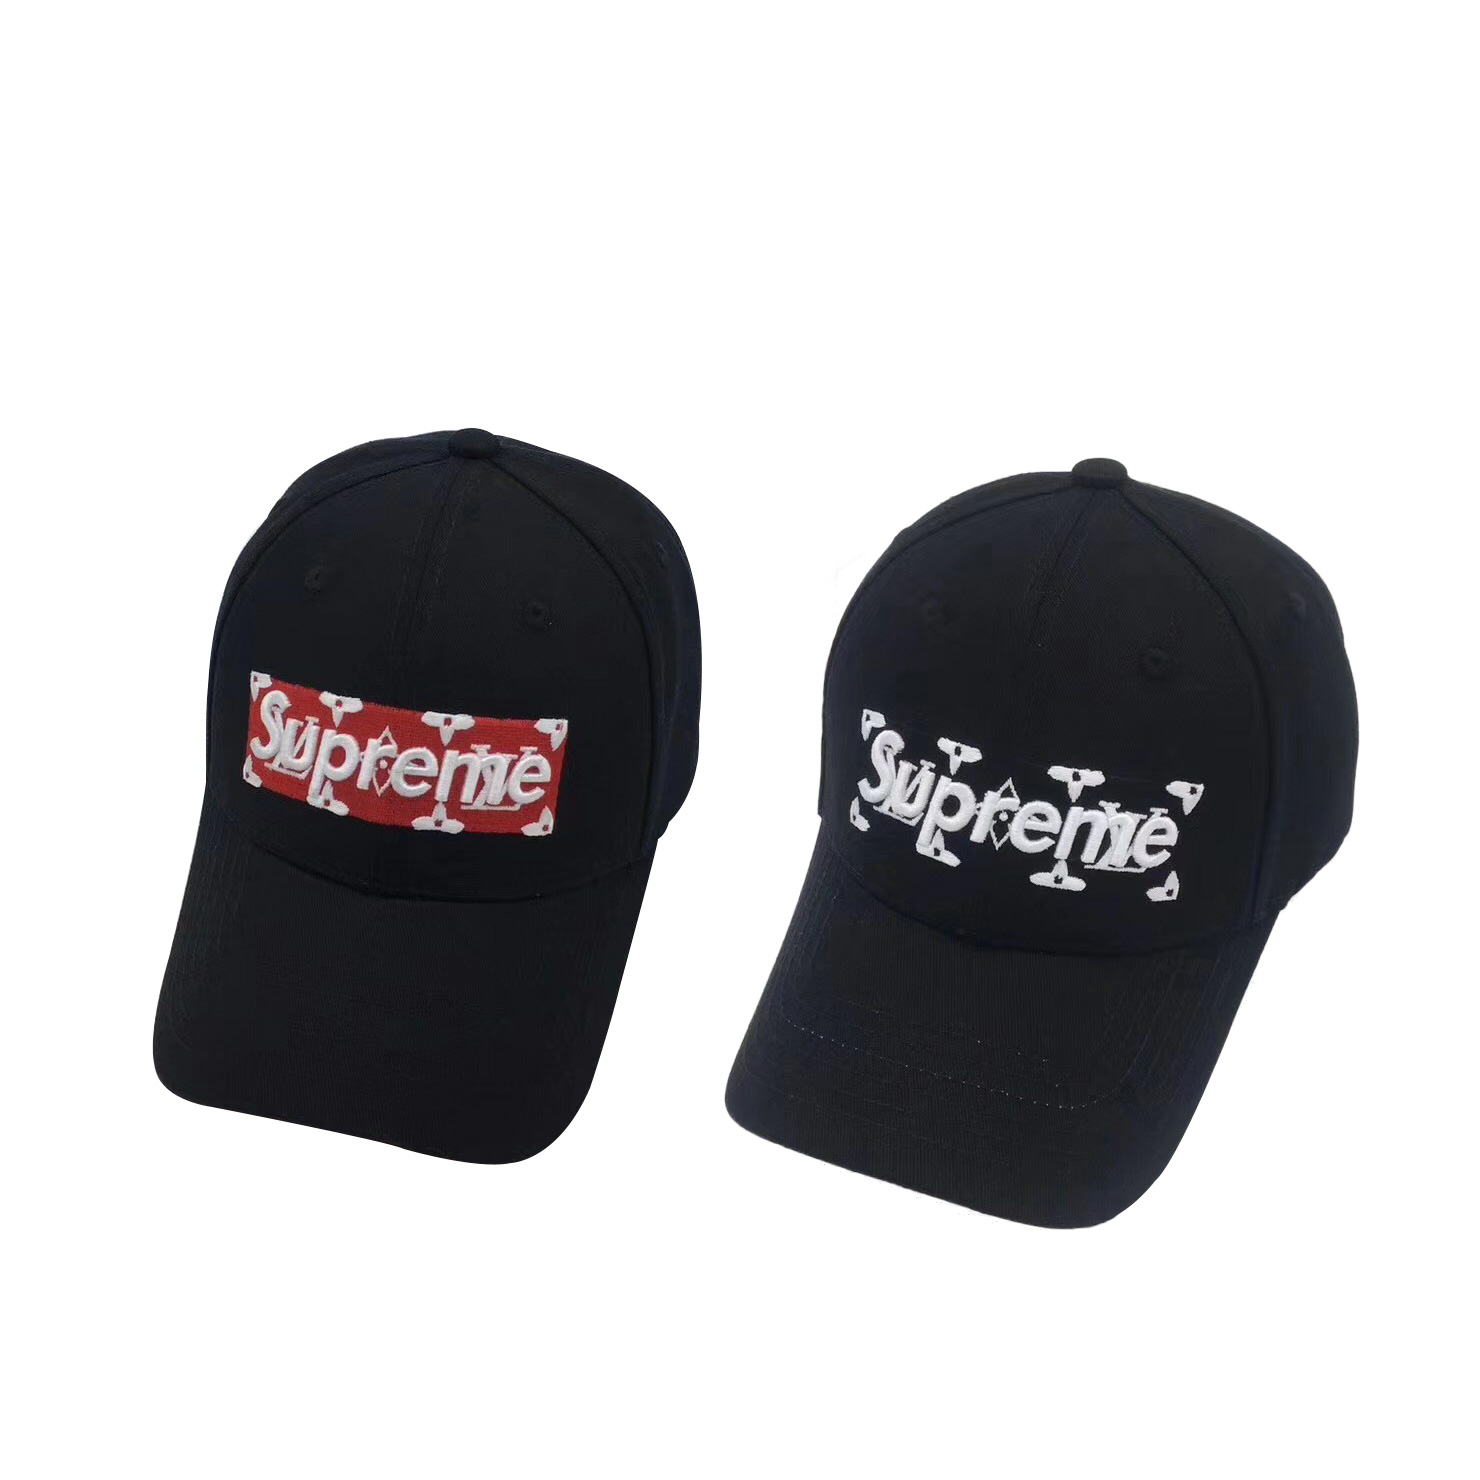 17SS Supreme X Louis Vuitton Big Logo Cap 2 Color